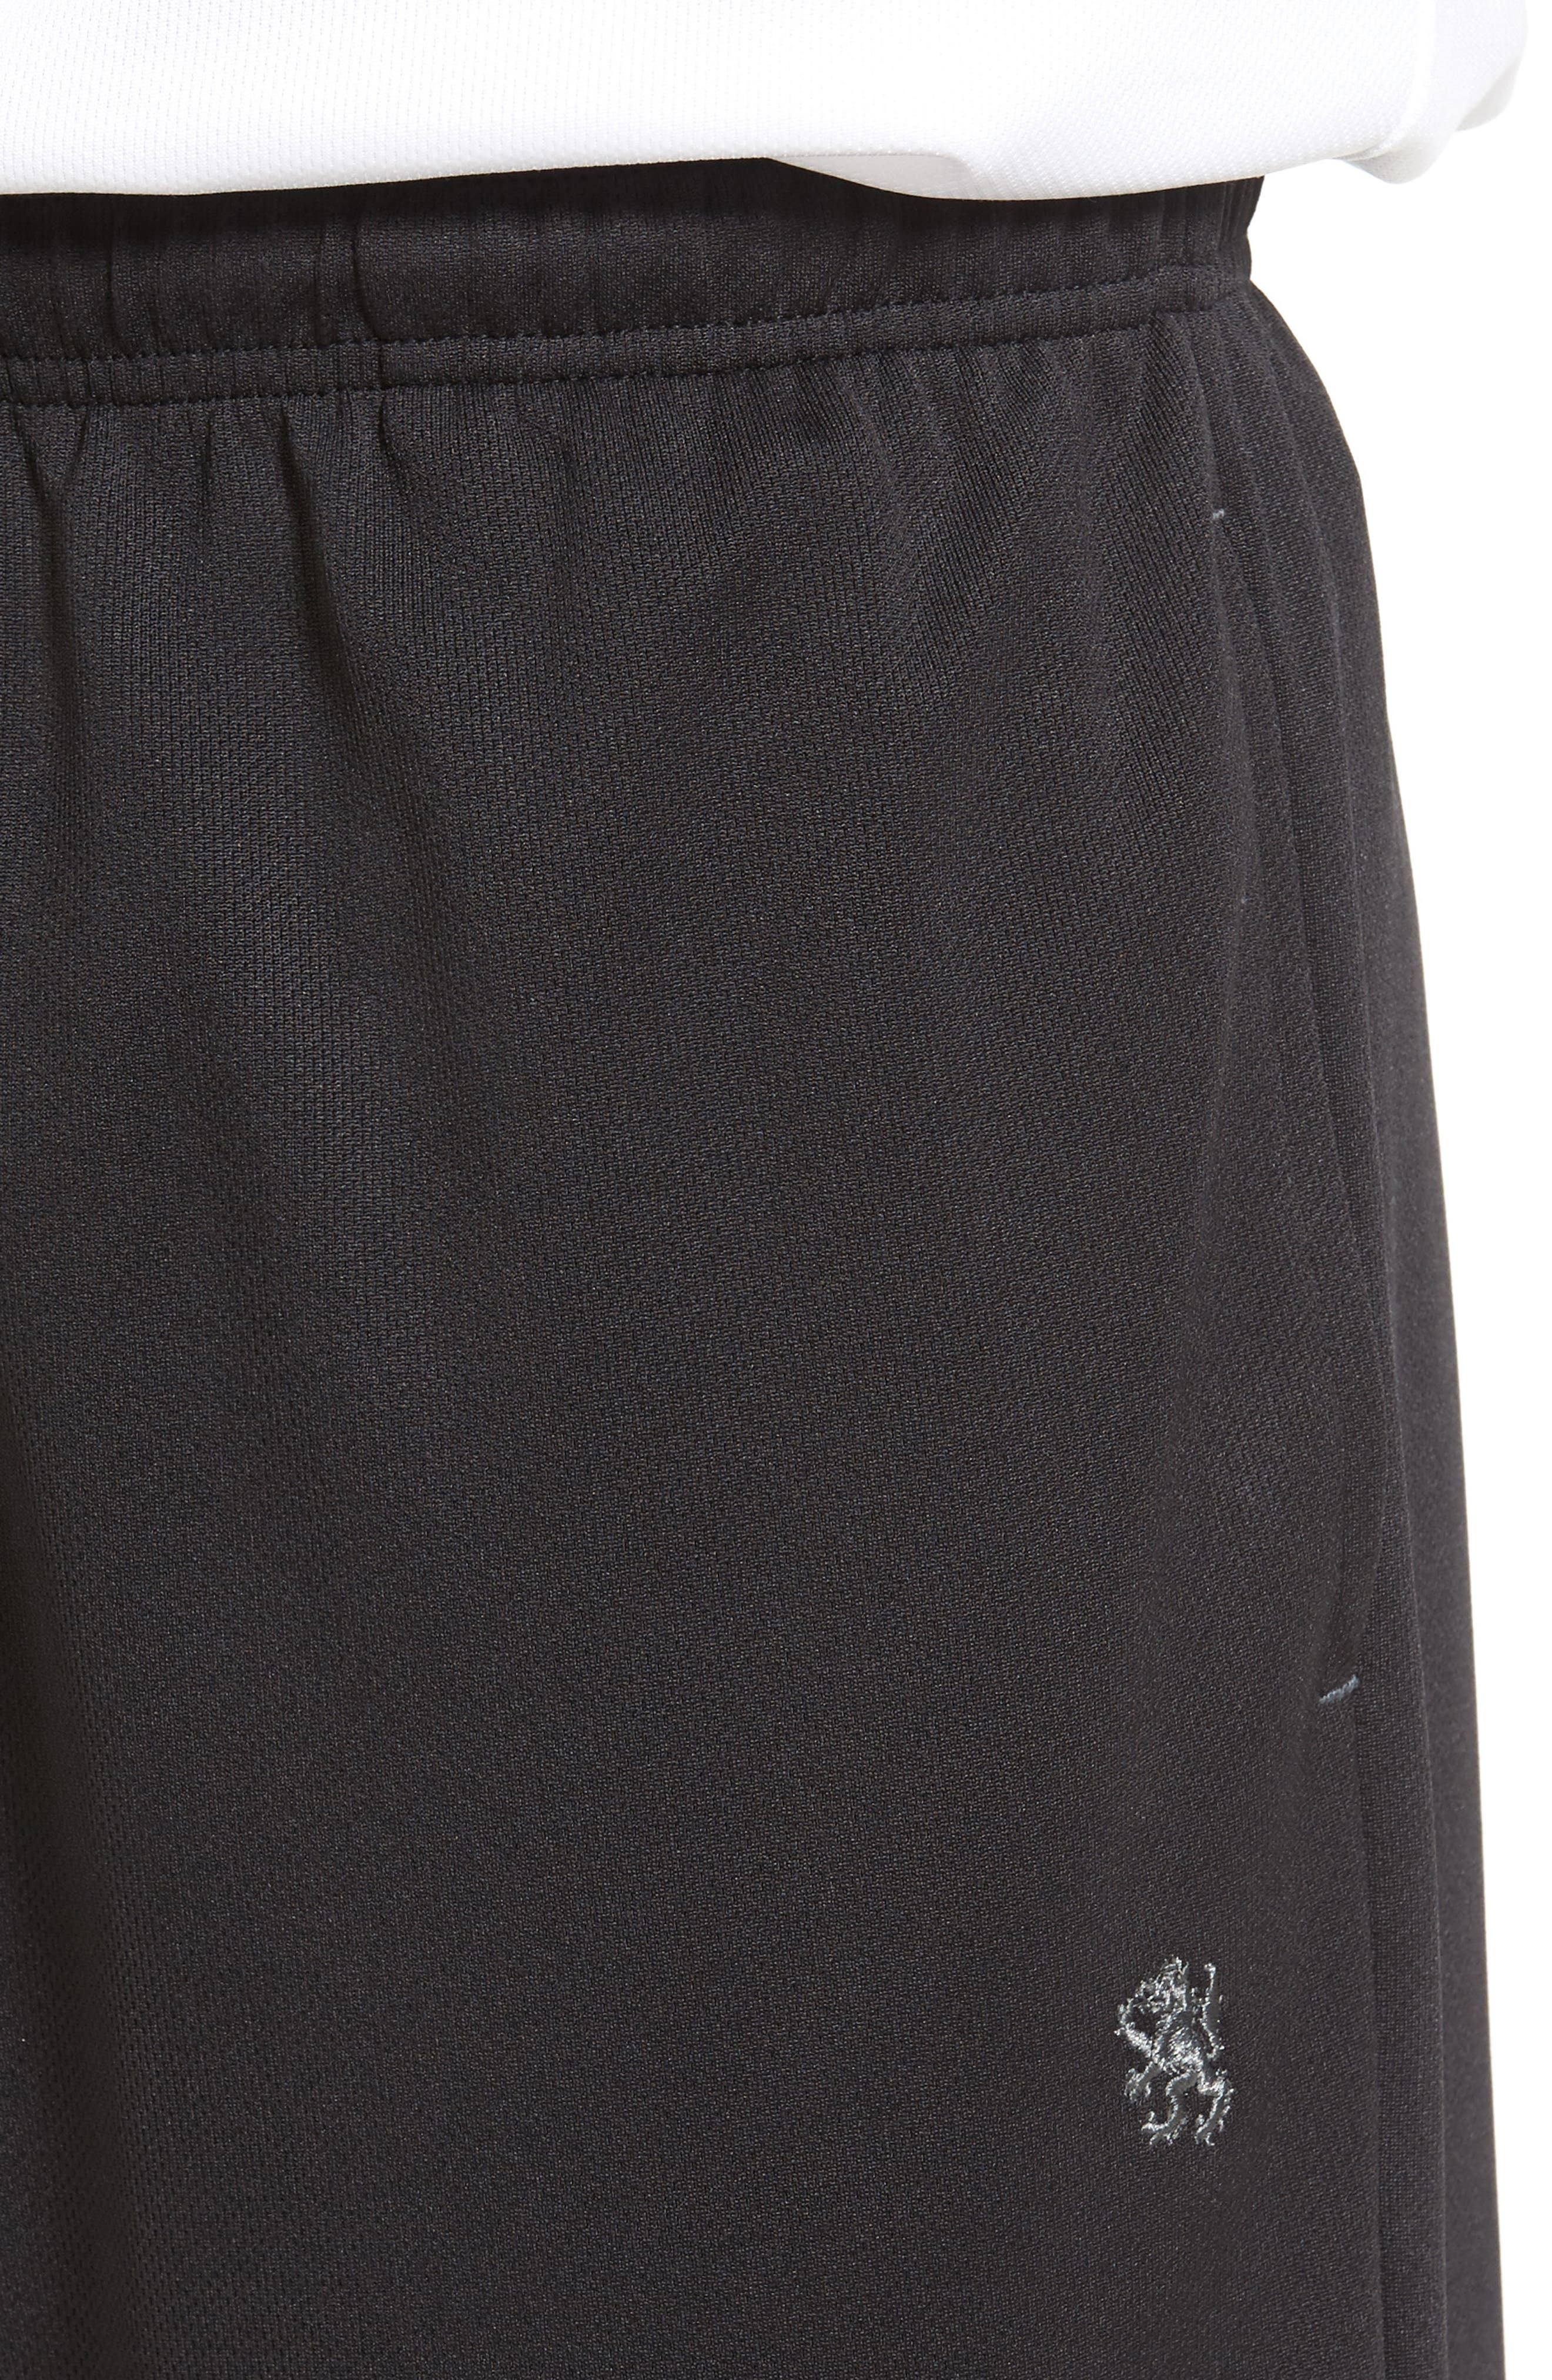 Work Out Lounge Pants,                             Alternate thumbnail 10, color,